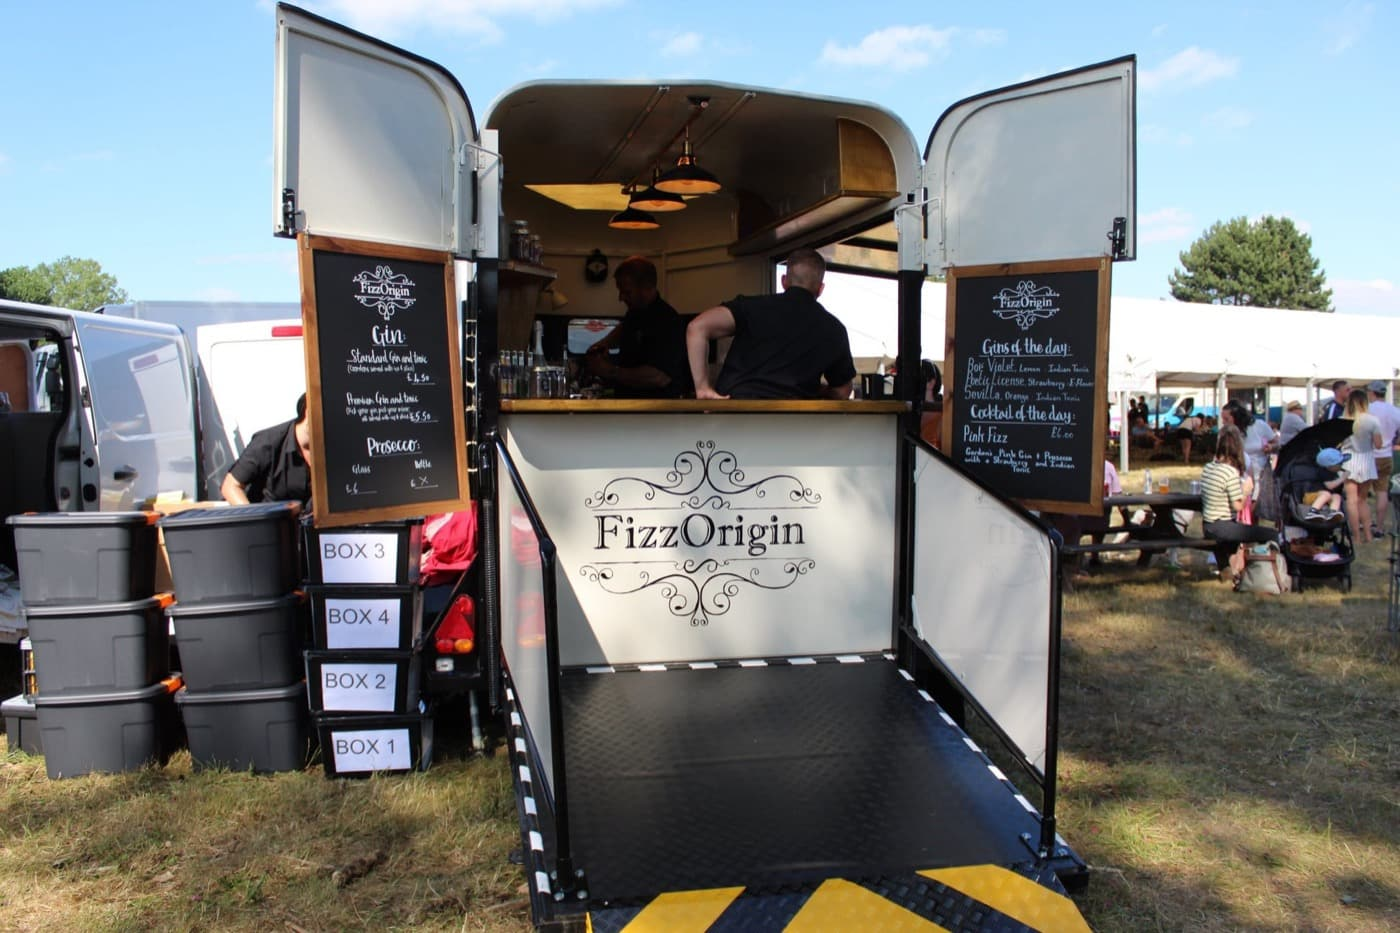 Feast-It-Fizz-Origin-Mobile-Bar-Gin-Cocktails-Unique-Bar-Wedding-Horsebox-Event-Catering-Book-Now-eleven